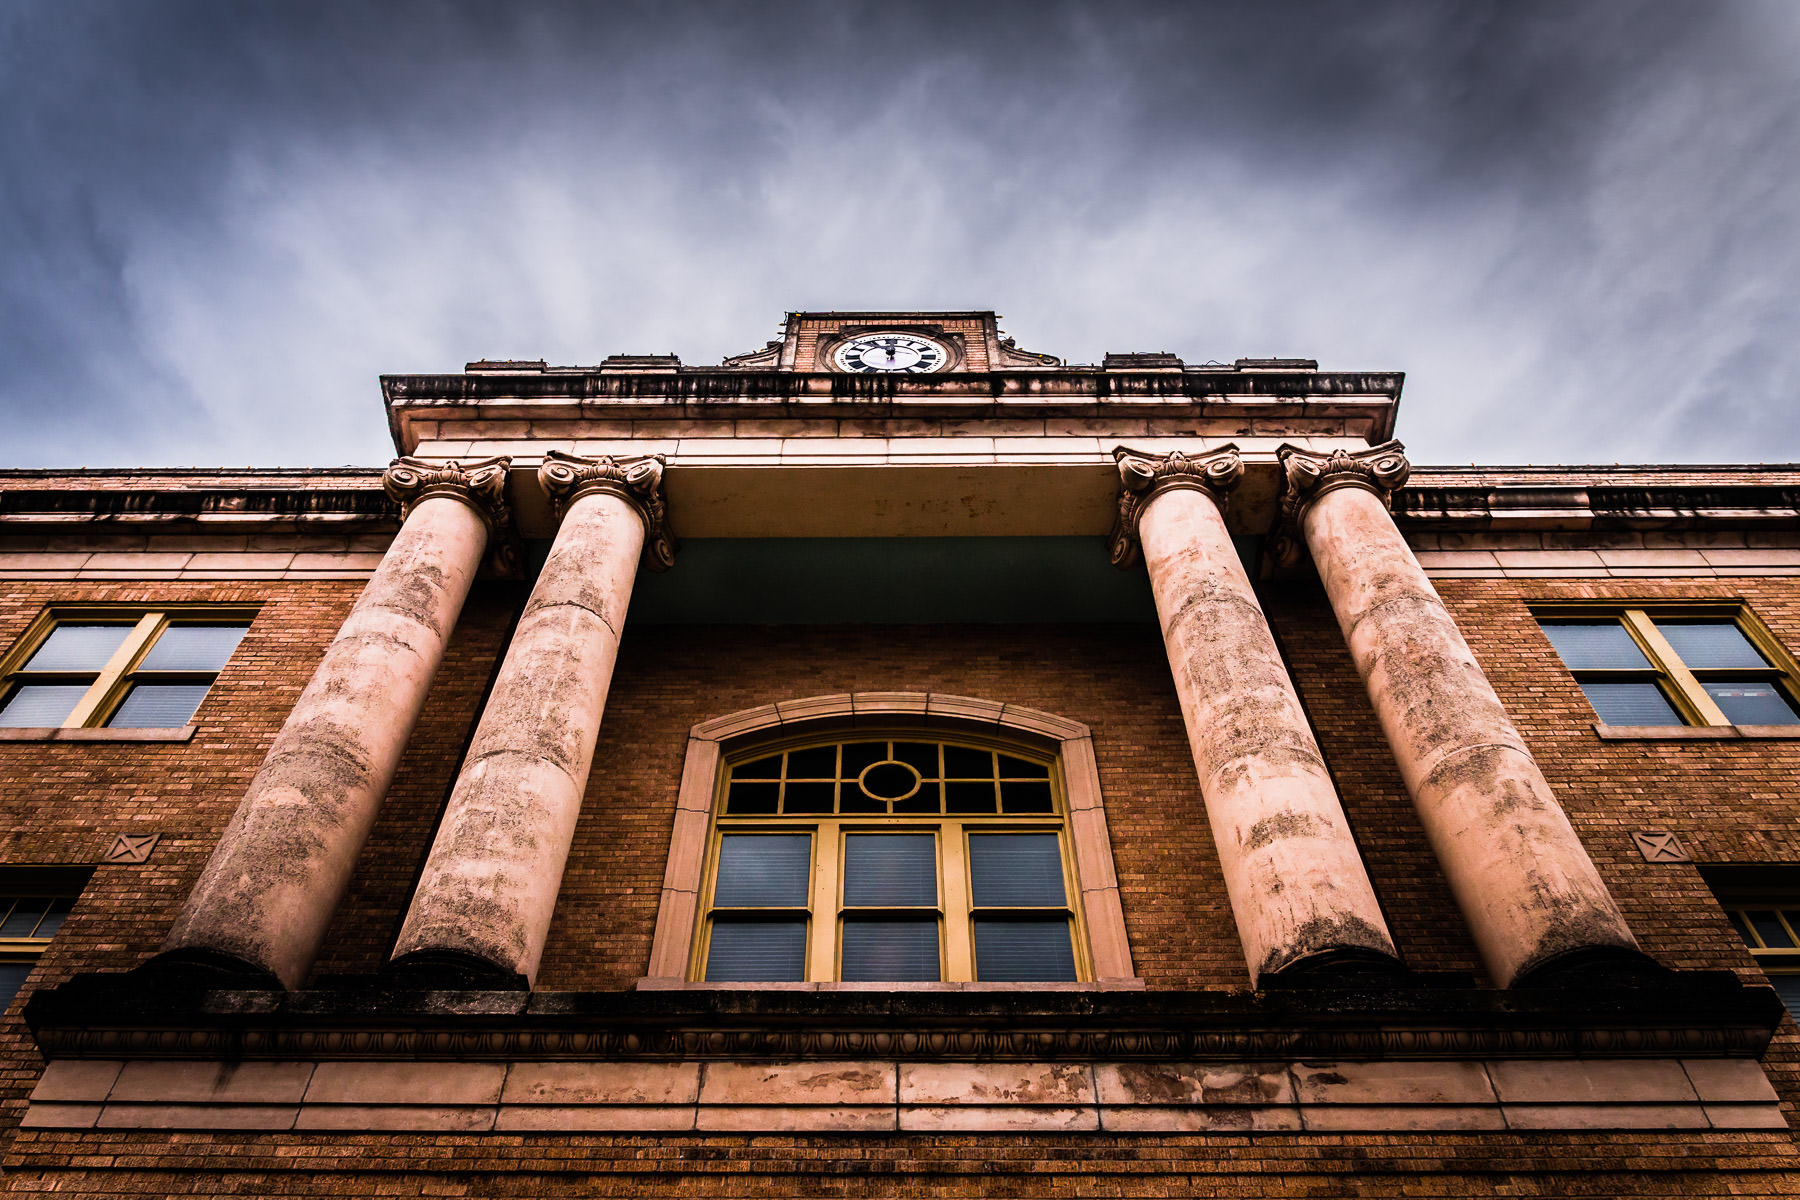 Overcast, stormy skies over the Old Collin County Courthouse, McKinney, Texas.